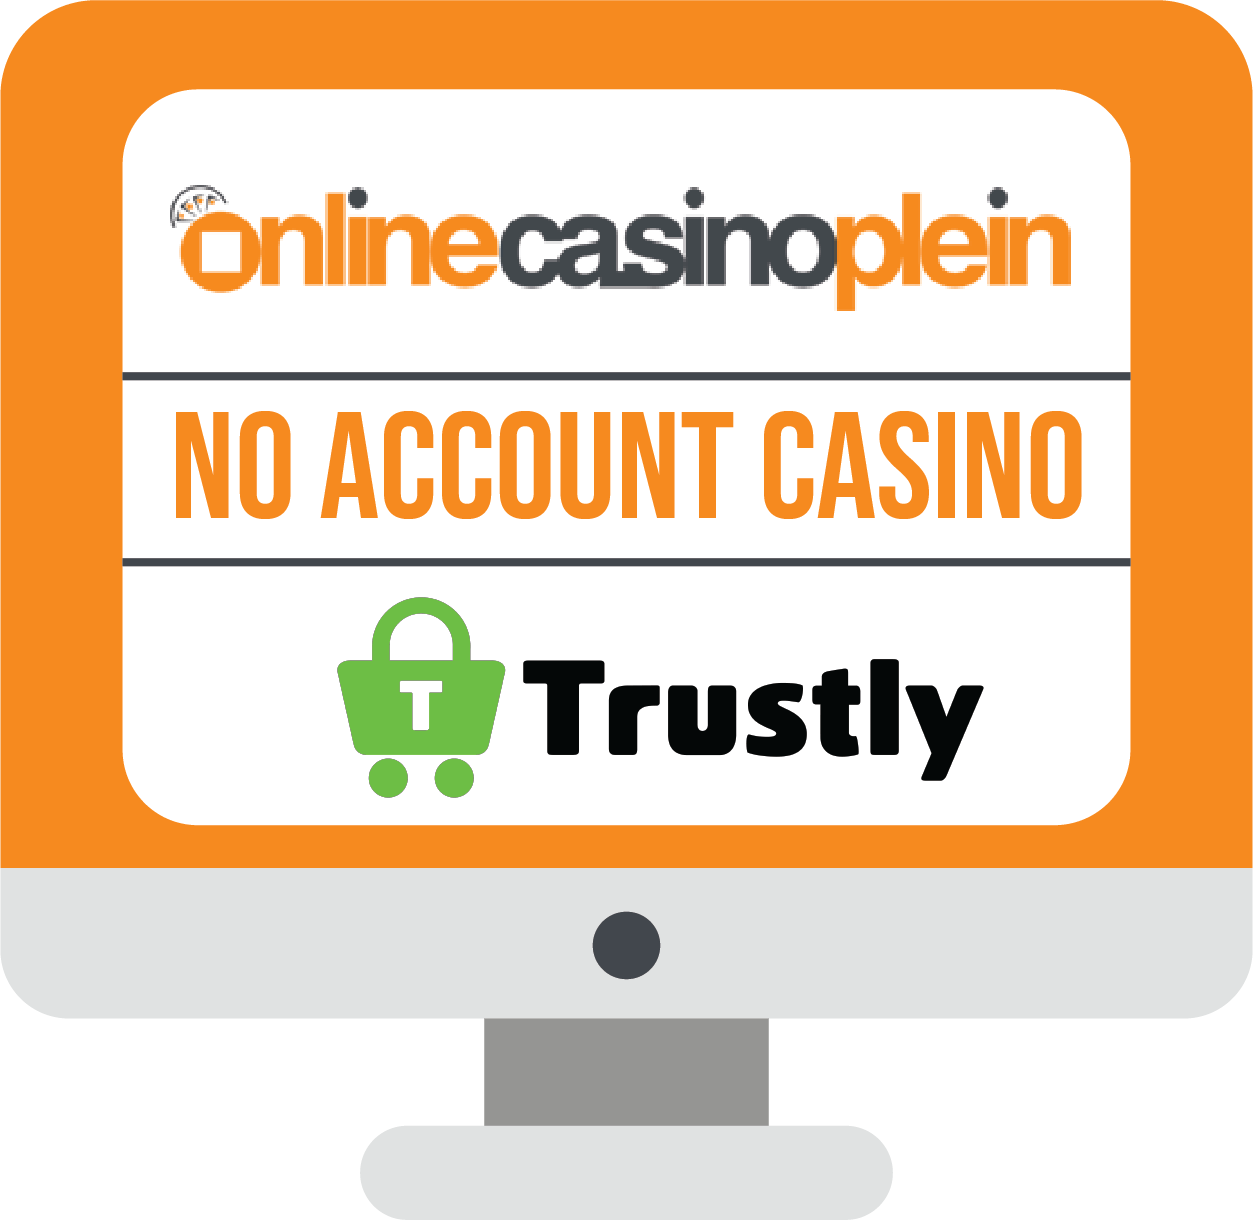 No Account Casino Trustly online casino